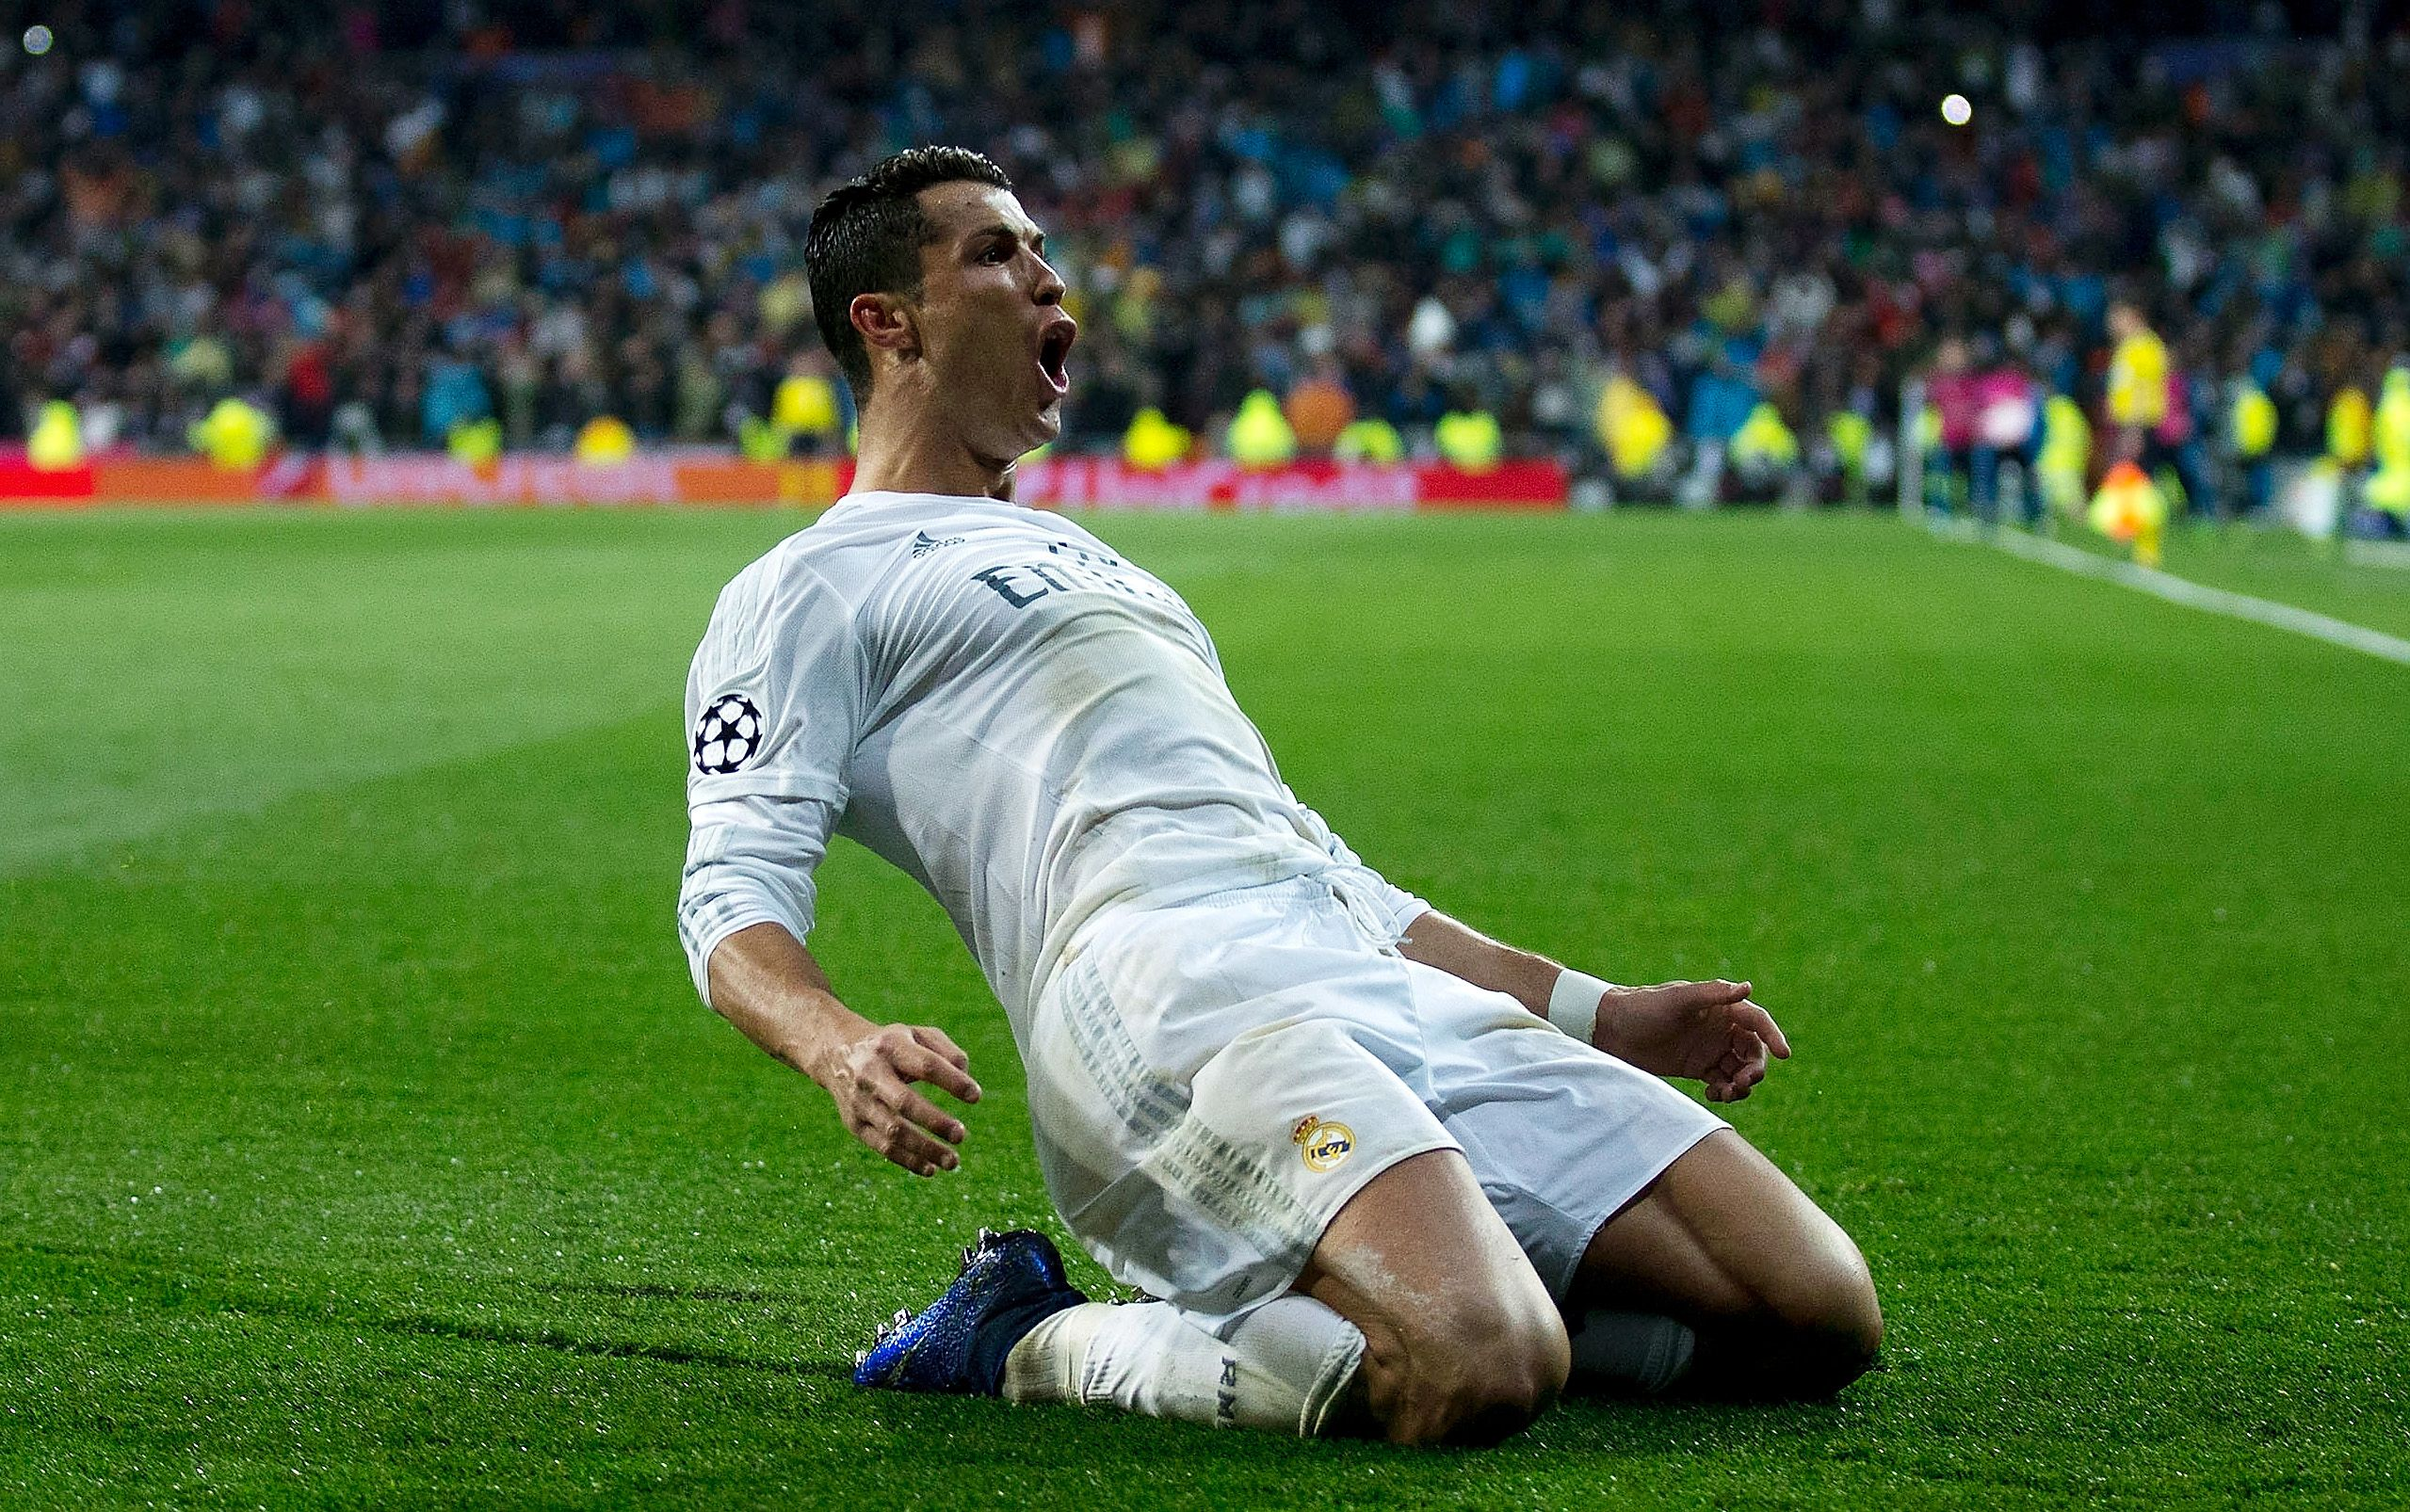 Is Cristiano Ronaldo Back To Being The Best In The World Cristiano Ronaldo Ronaldo Champions League